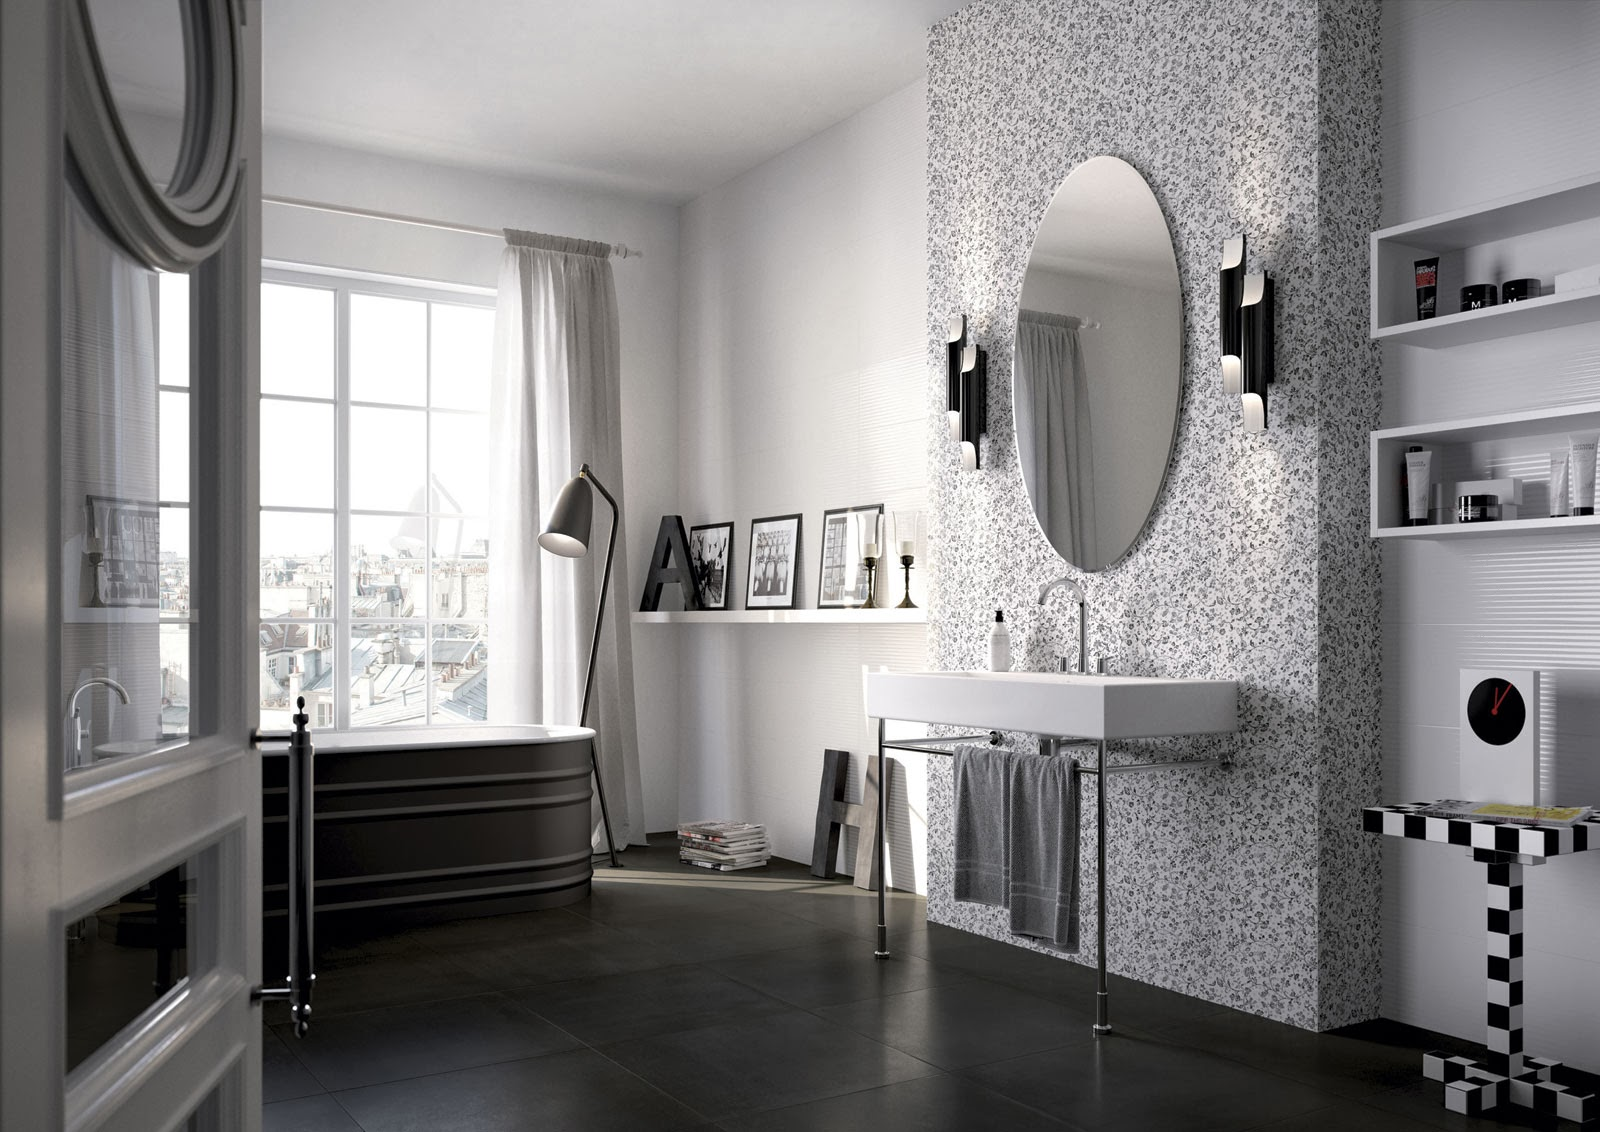 carrelage salle de bain aubade. Black Bedroom Furniture Sets. Home Design Ideas